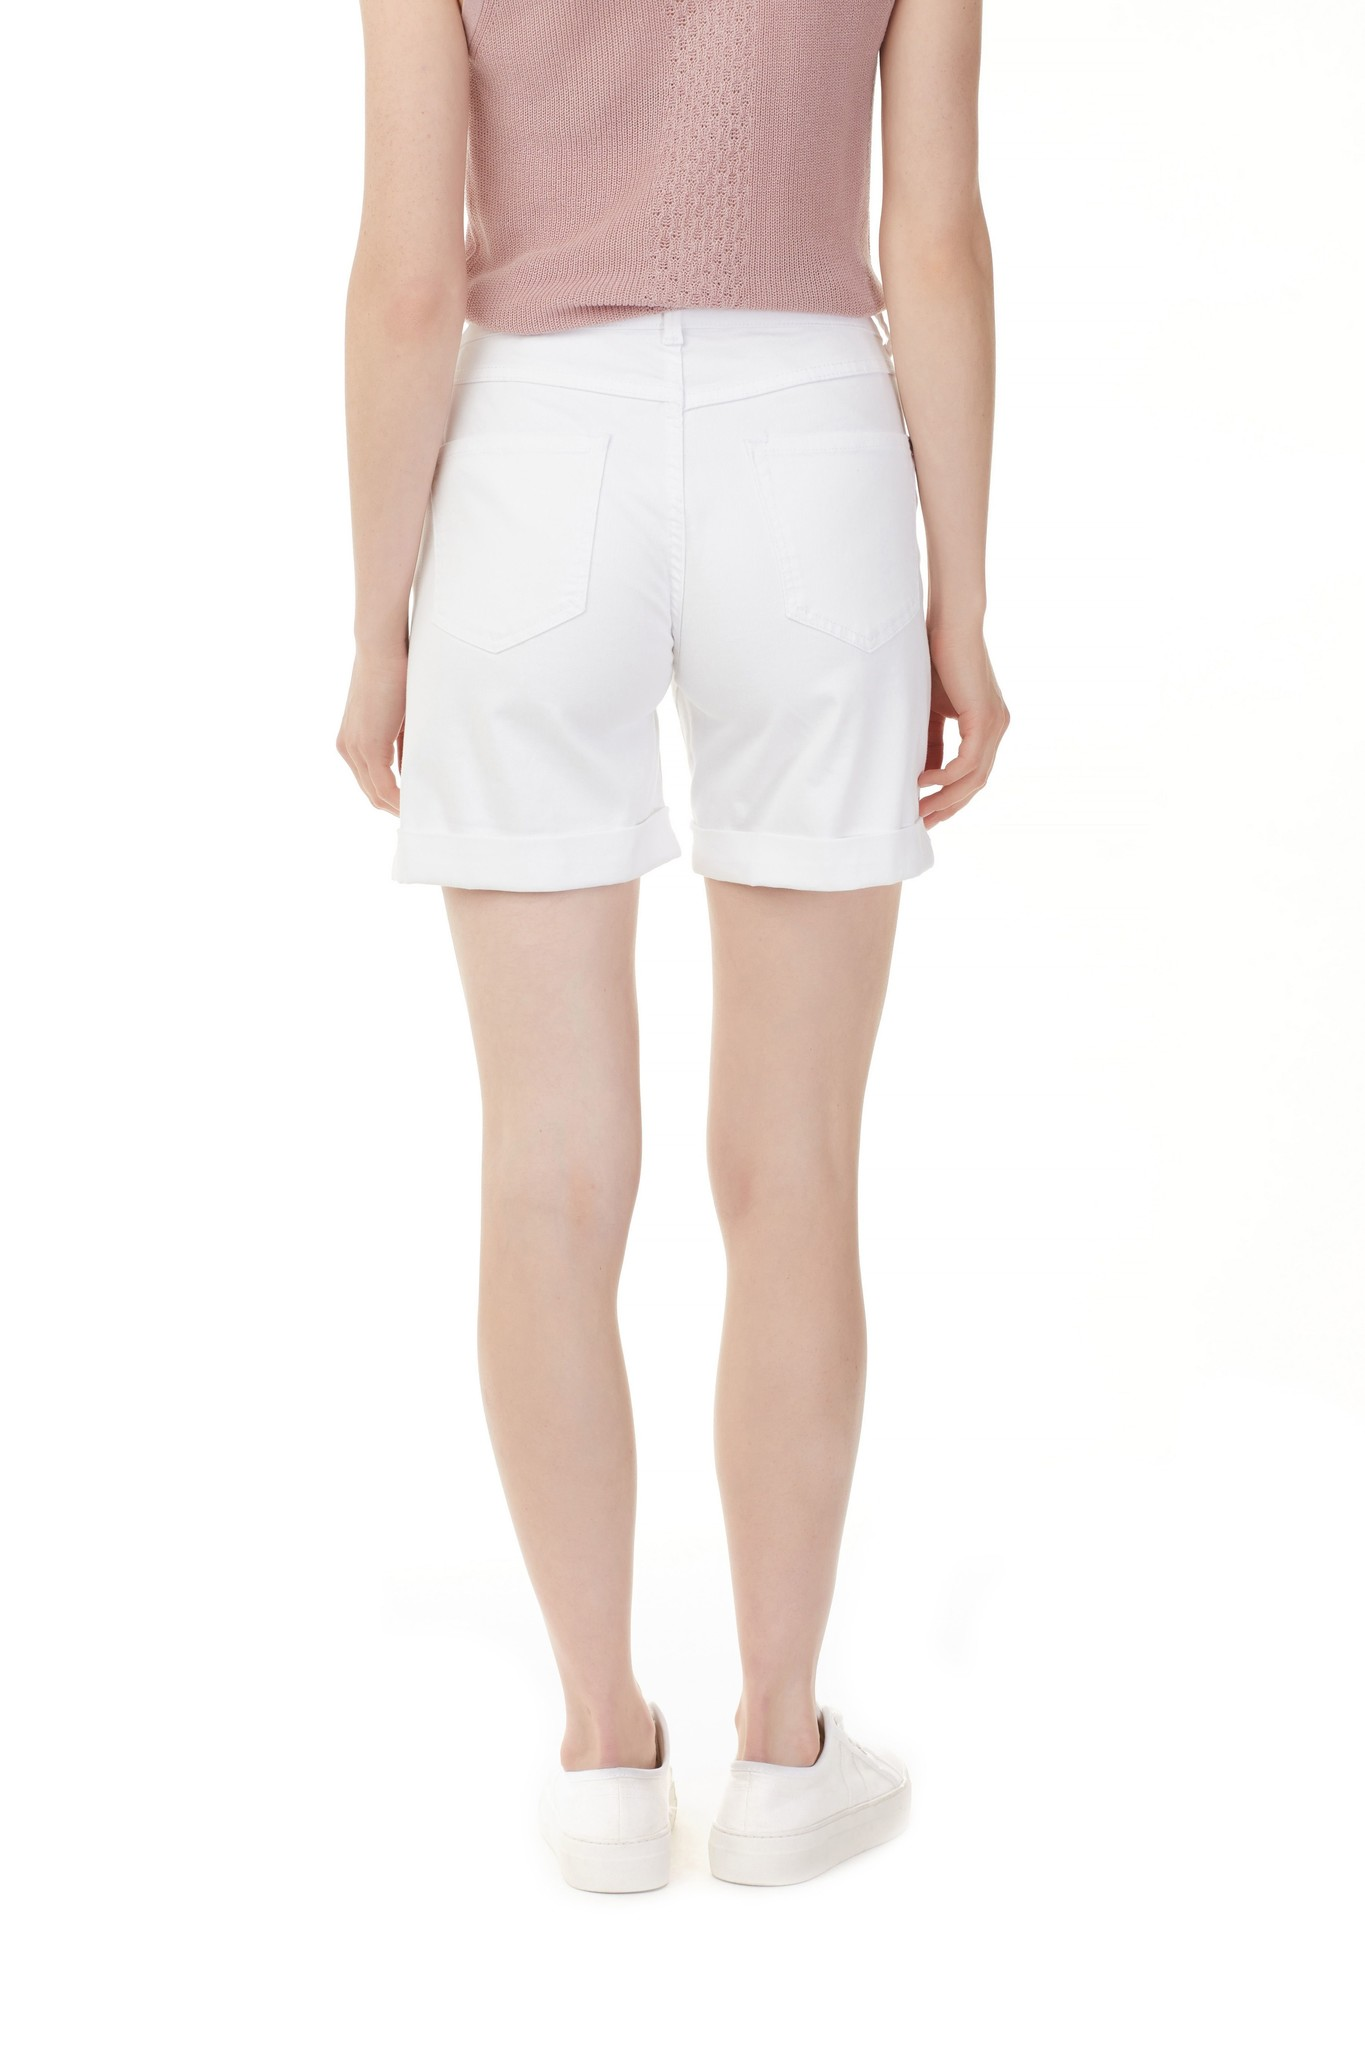 Charlie B Charlie B Short w Roll-Up Hem - Multiple Colors